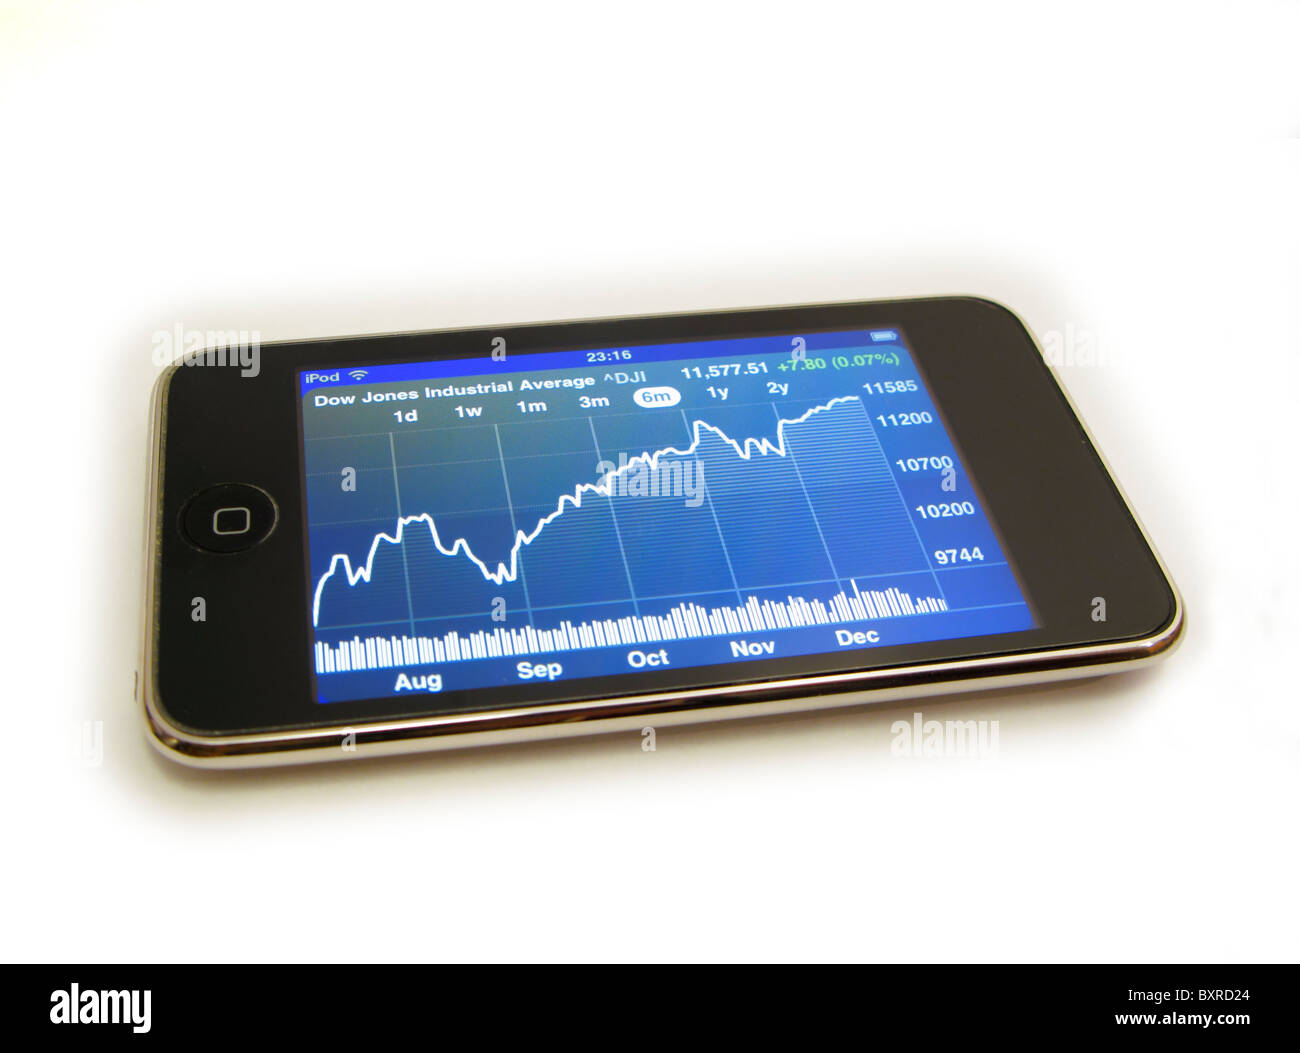 cutout of ipod touch showing Dow Jones stock market graph to end of 2010 on white background - Stock Image